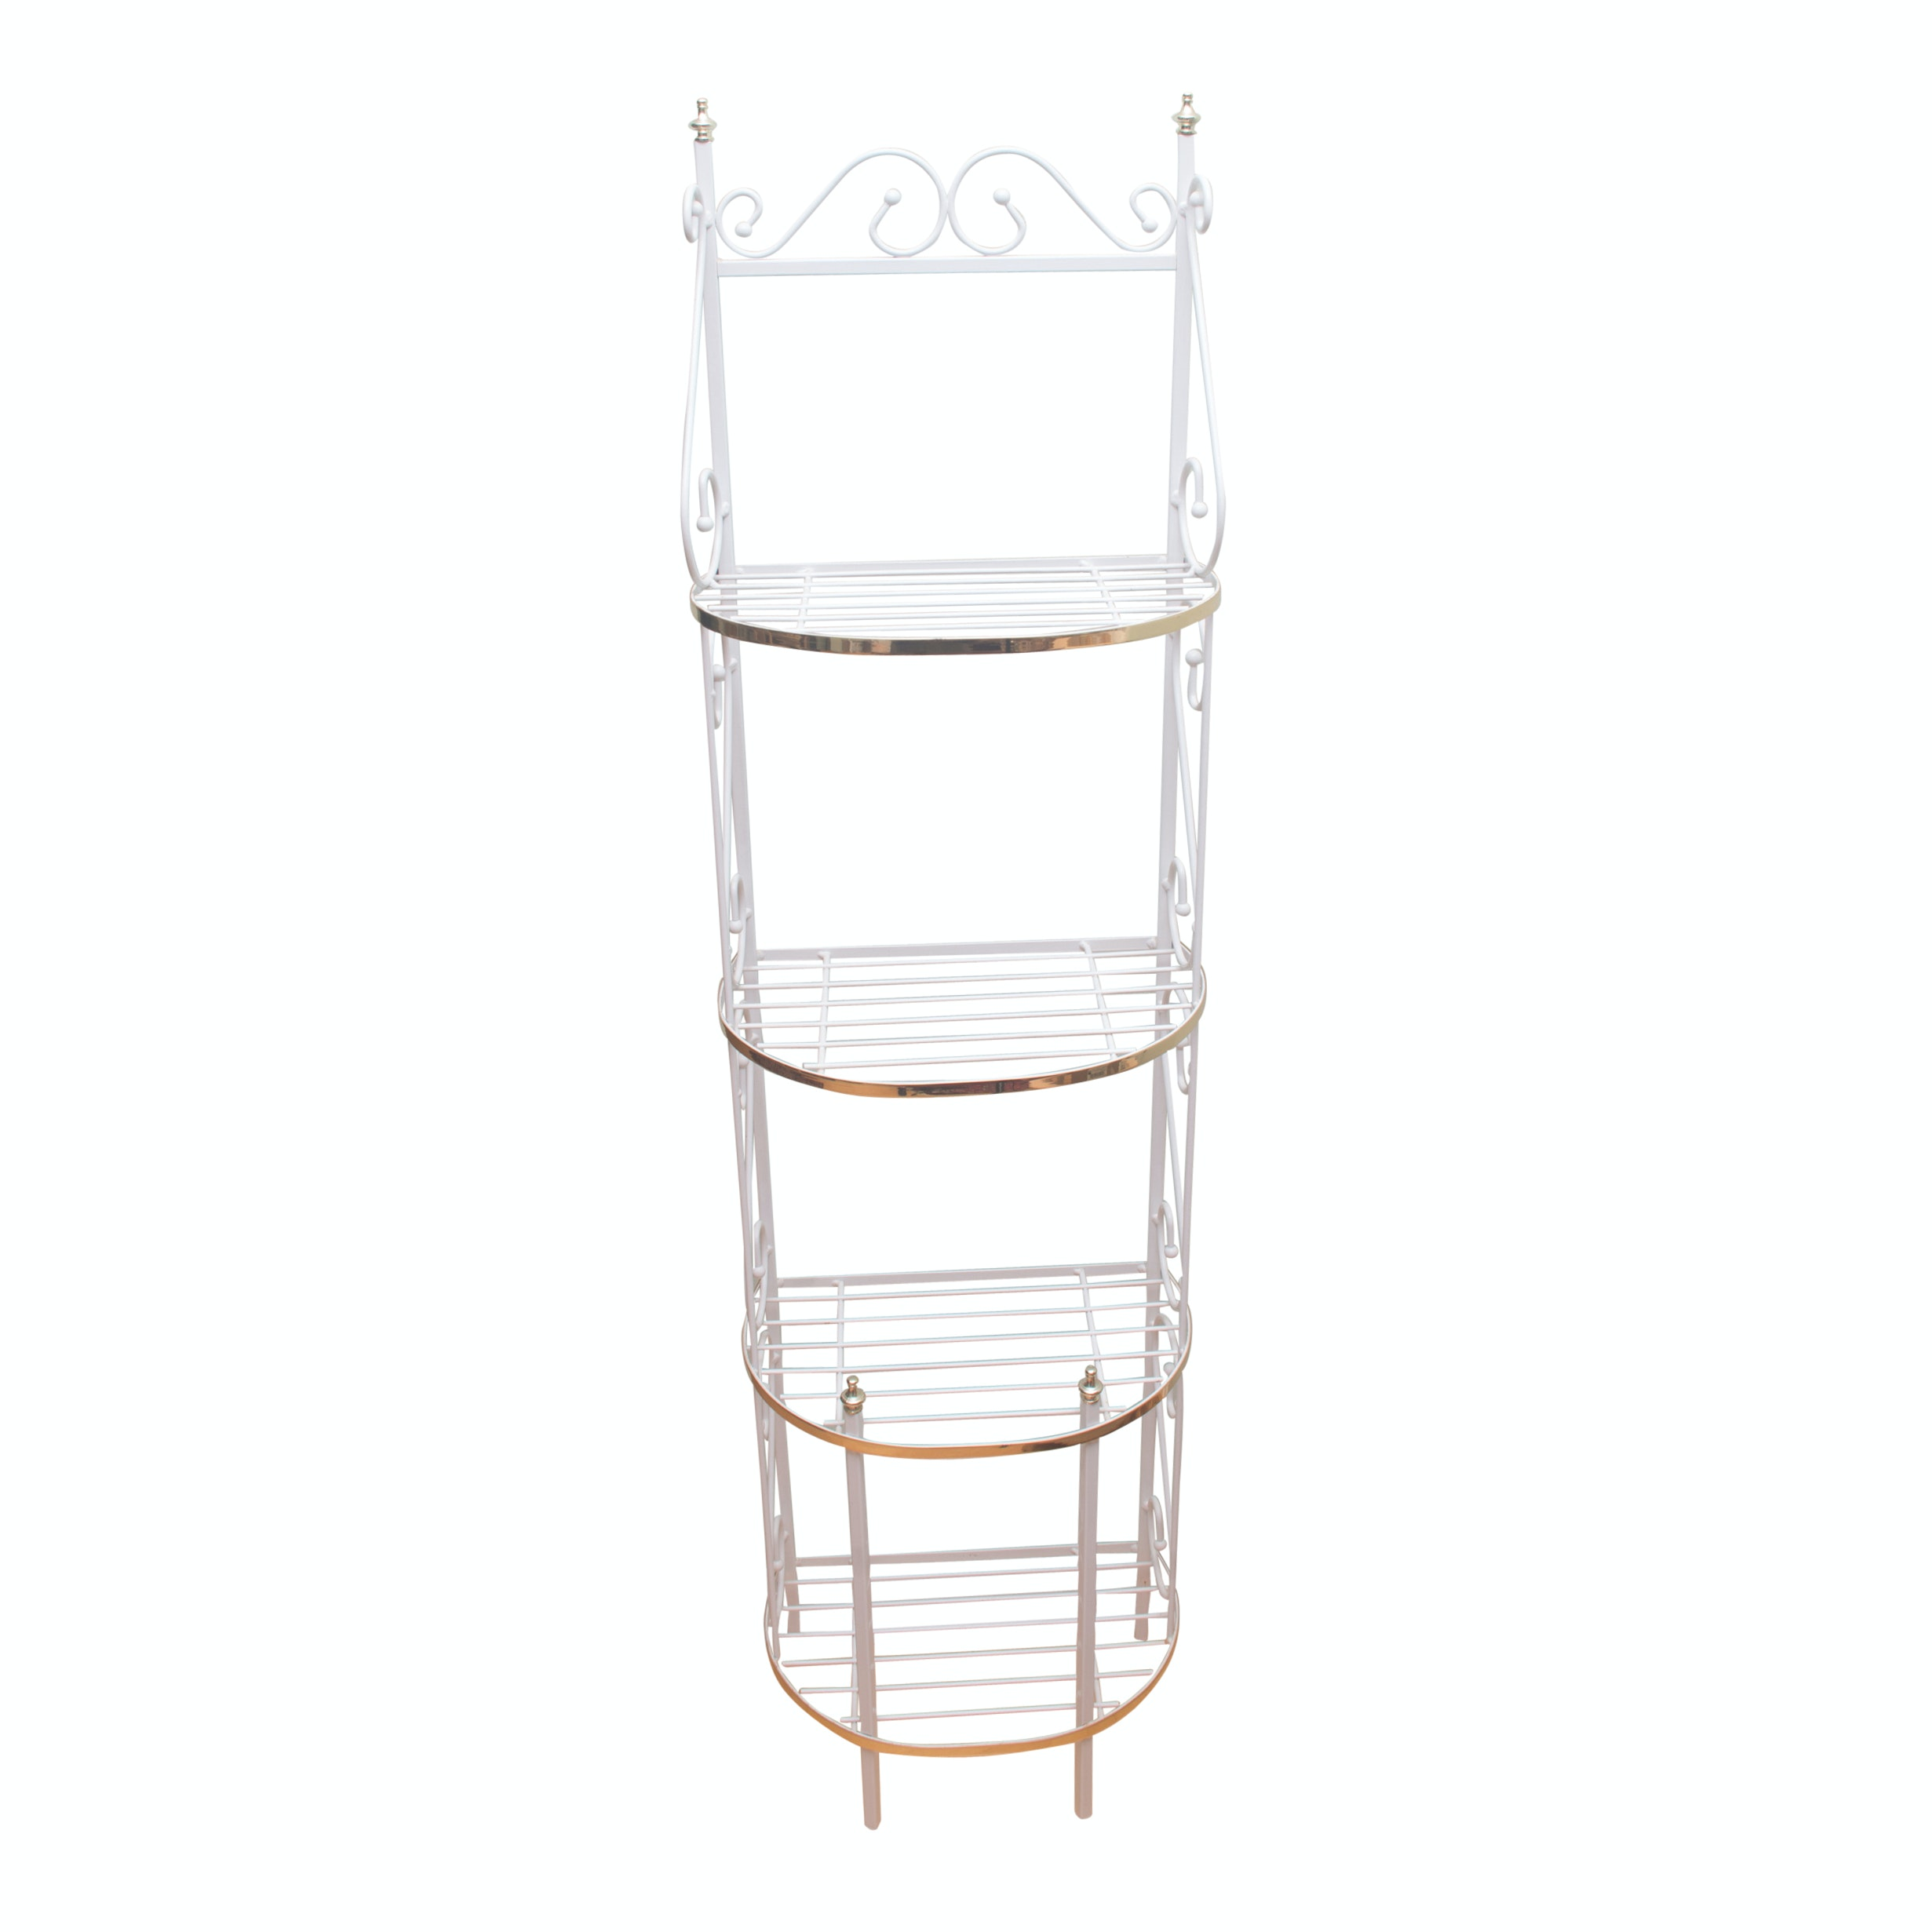 Scrolled White Metal Étagère with Brass Tone Accents